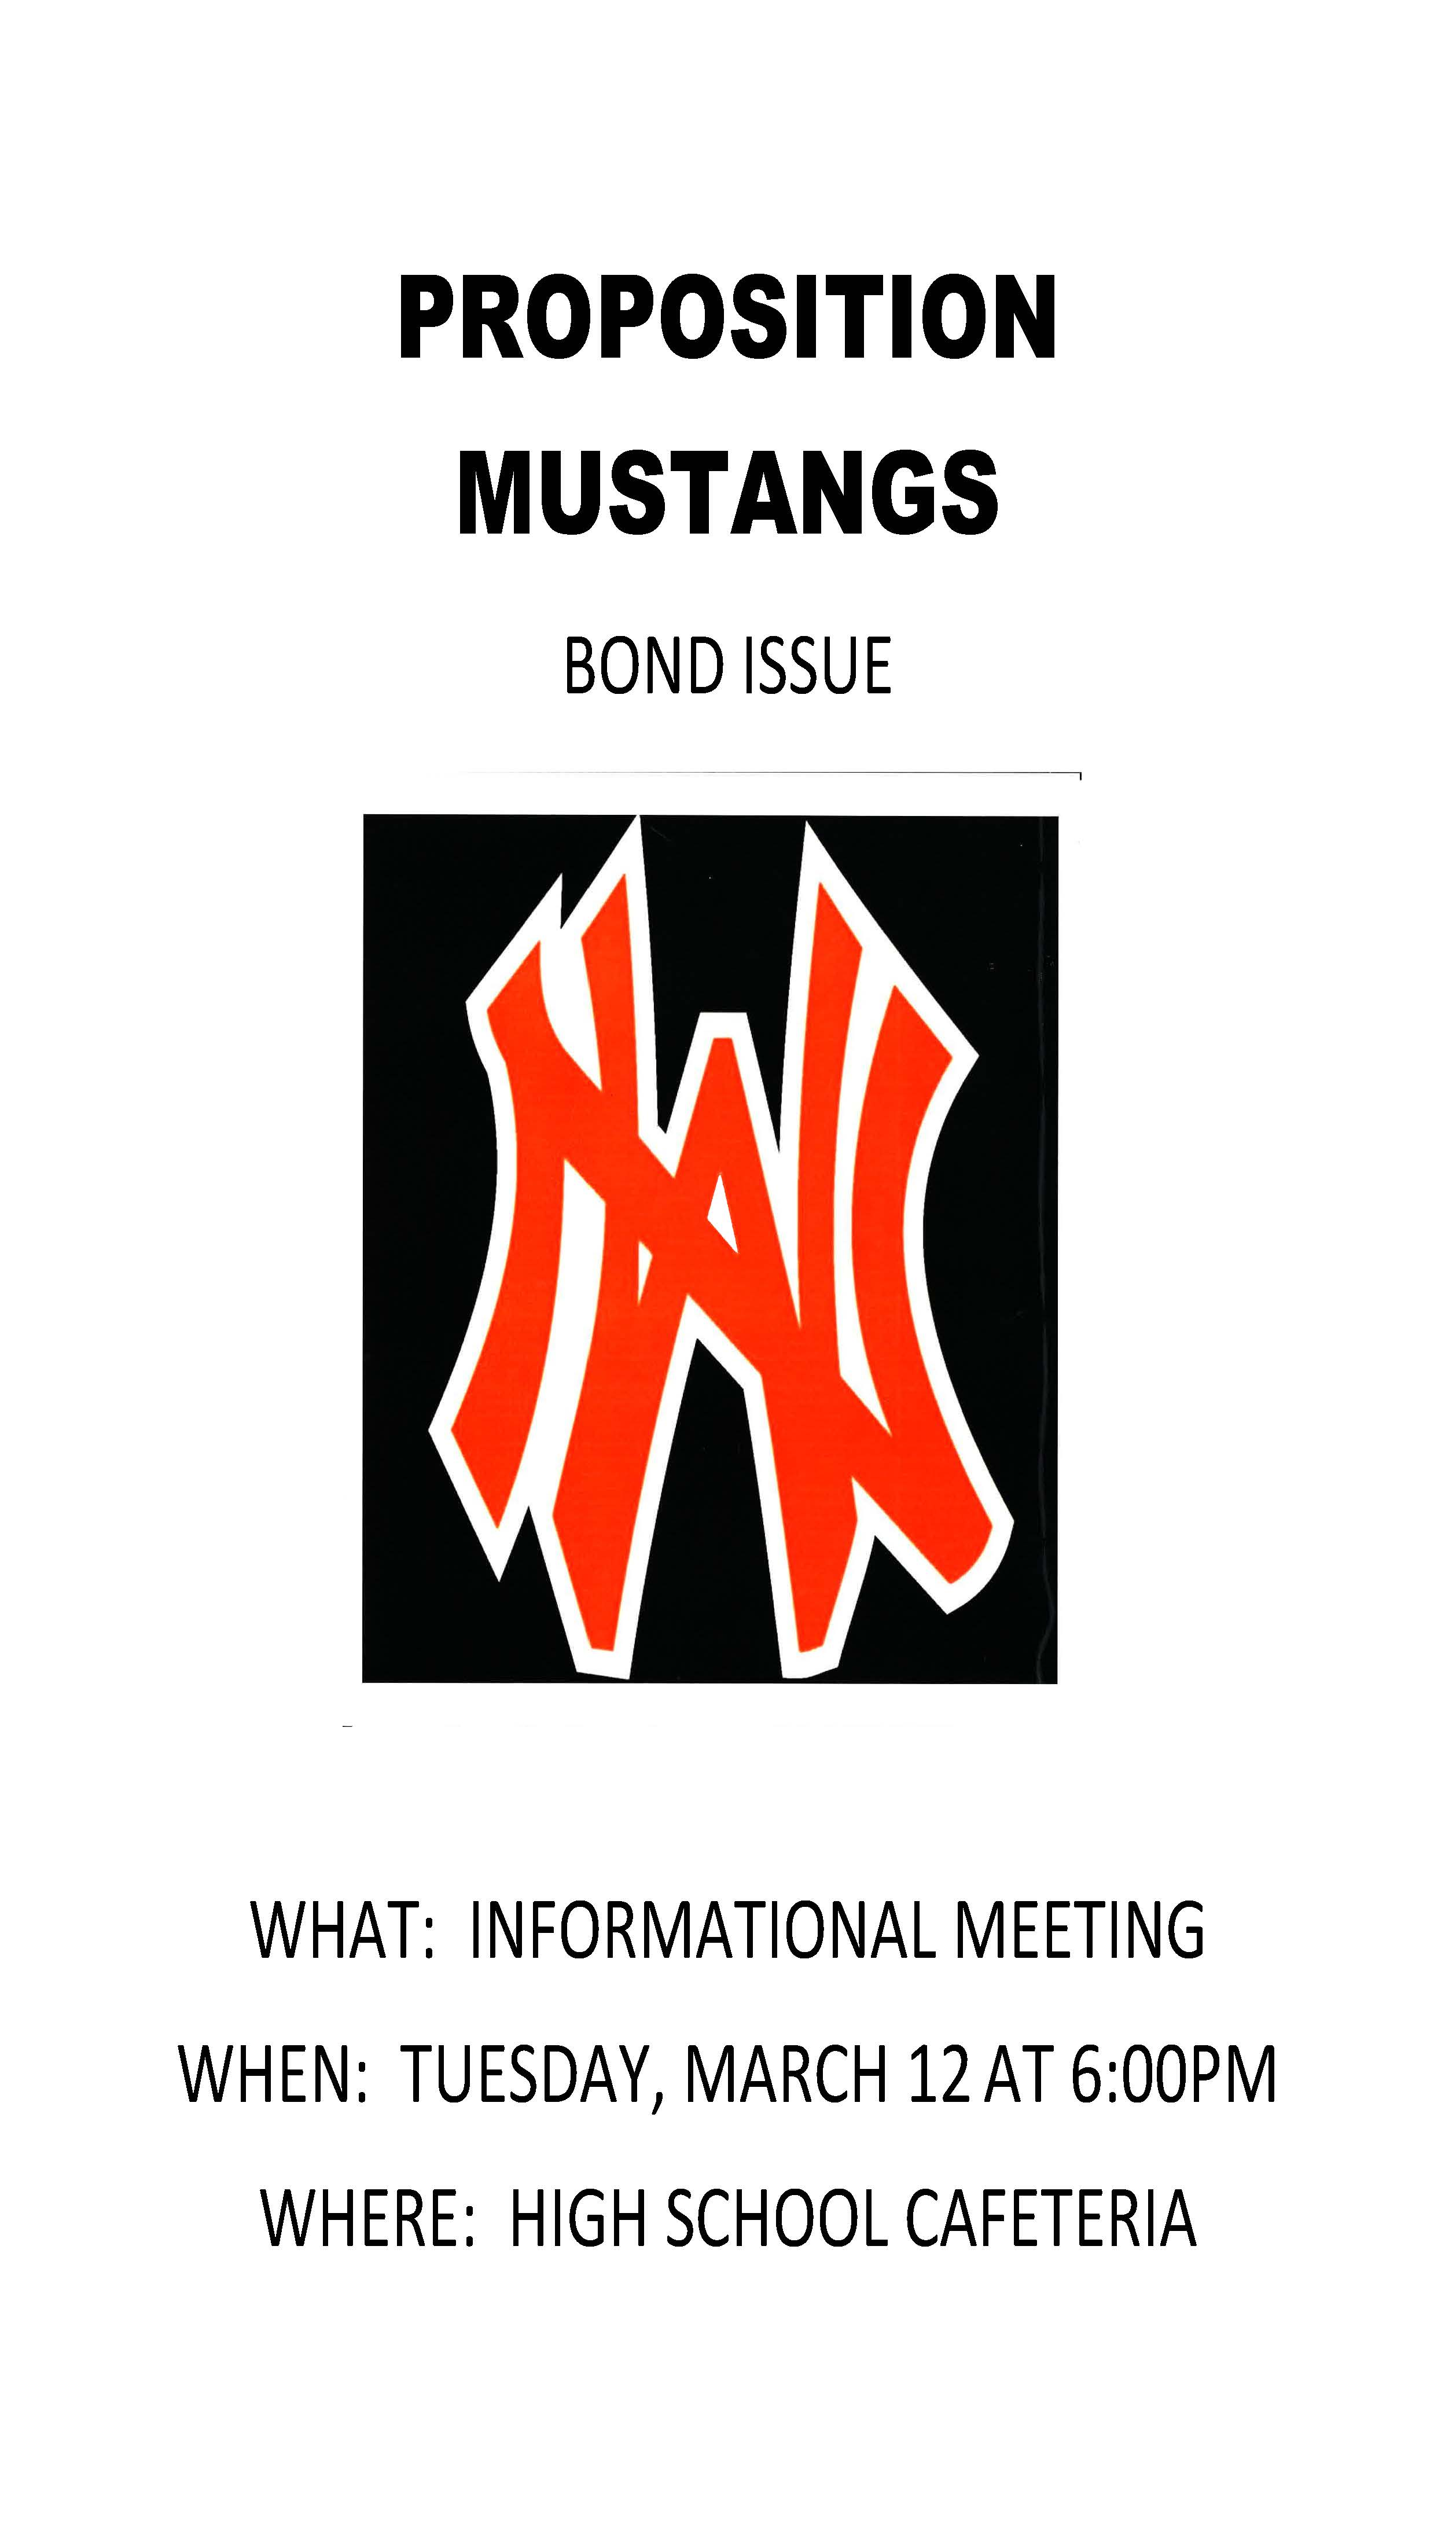 "This image is a flyer, which reads ""Proposition Mustangs Bond Issue, What: Informational Meeting, When: Tuesday, March 12 at 6 pm, Where: High School Cafeteria""."